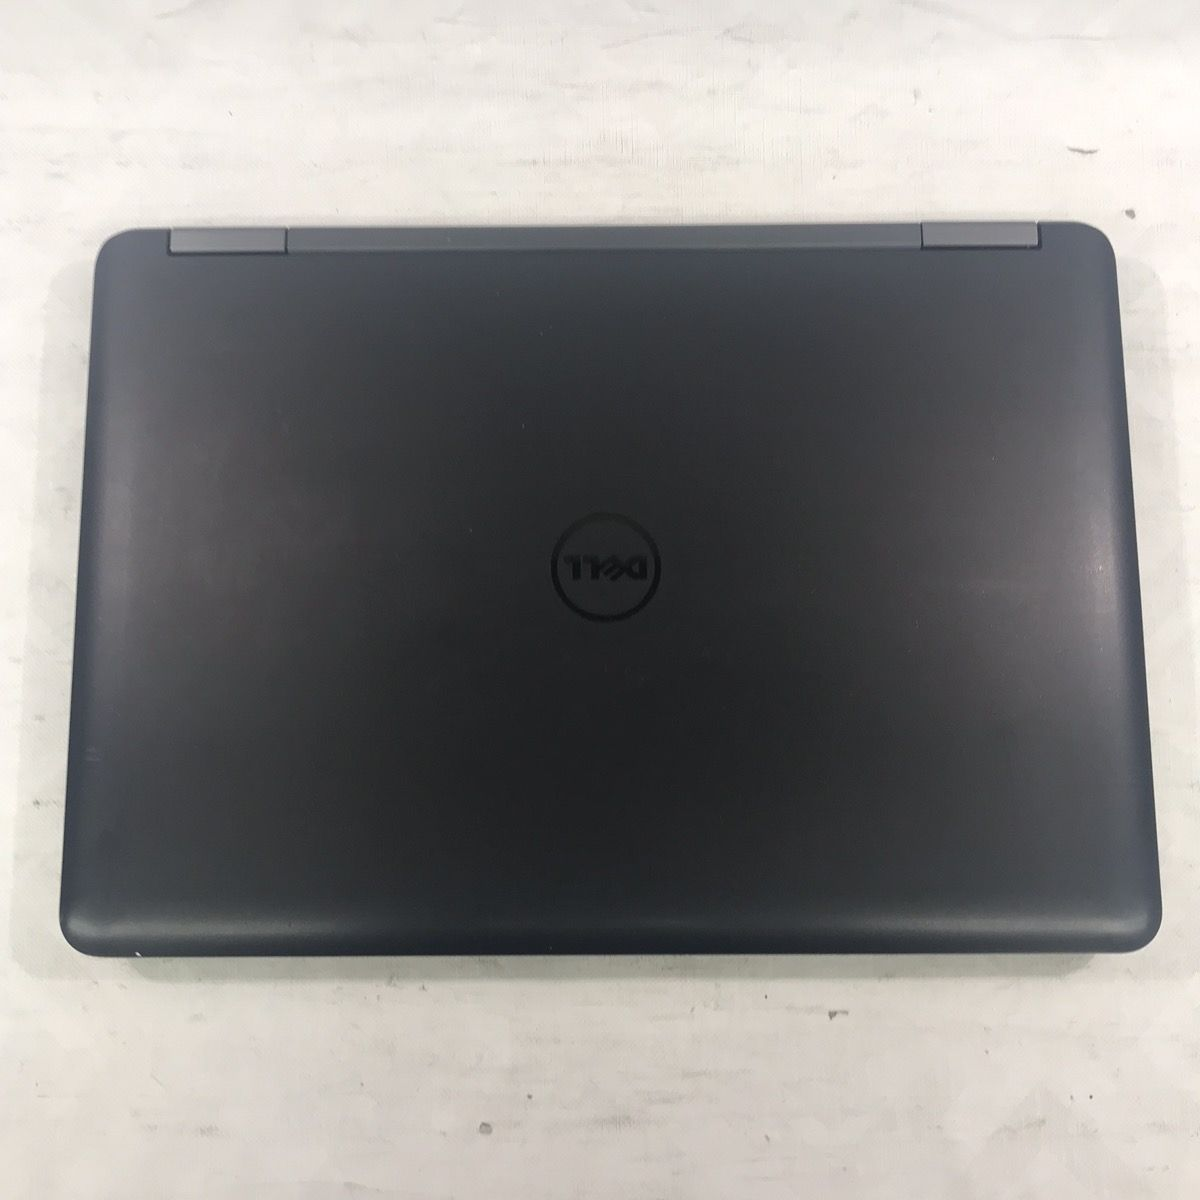 限定品超お買得 DELL Latitude E5440 Windows10 HomeCore i5 4300U 1 9PiwkXTZOu